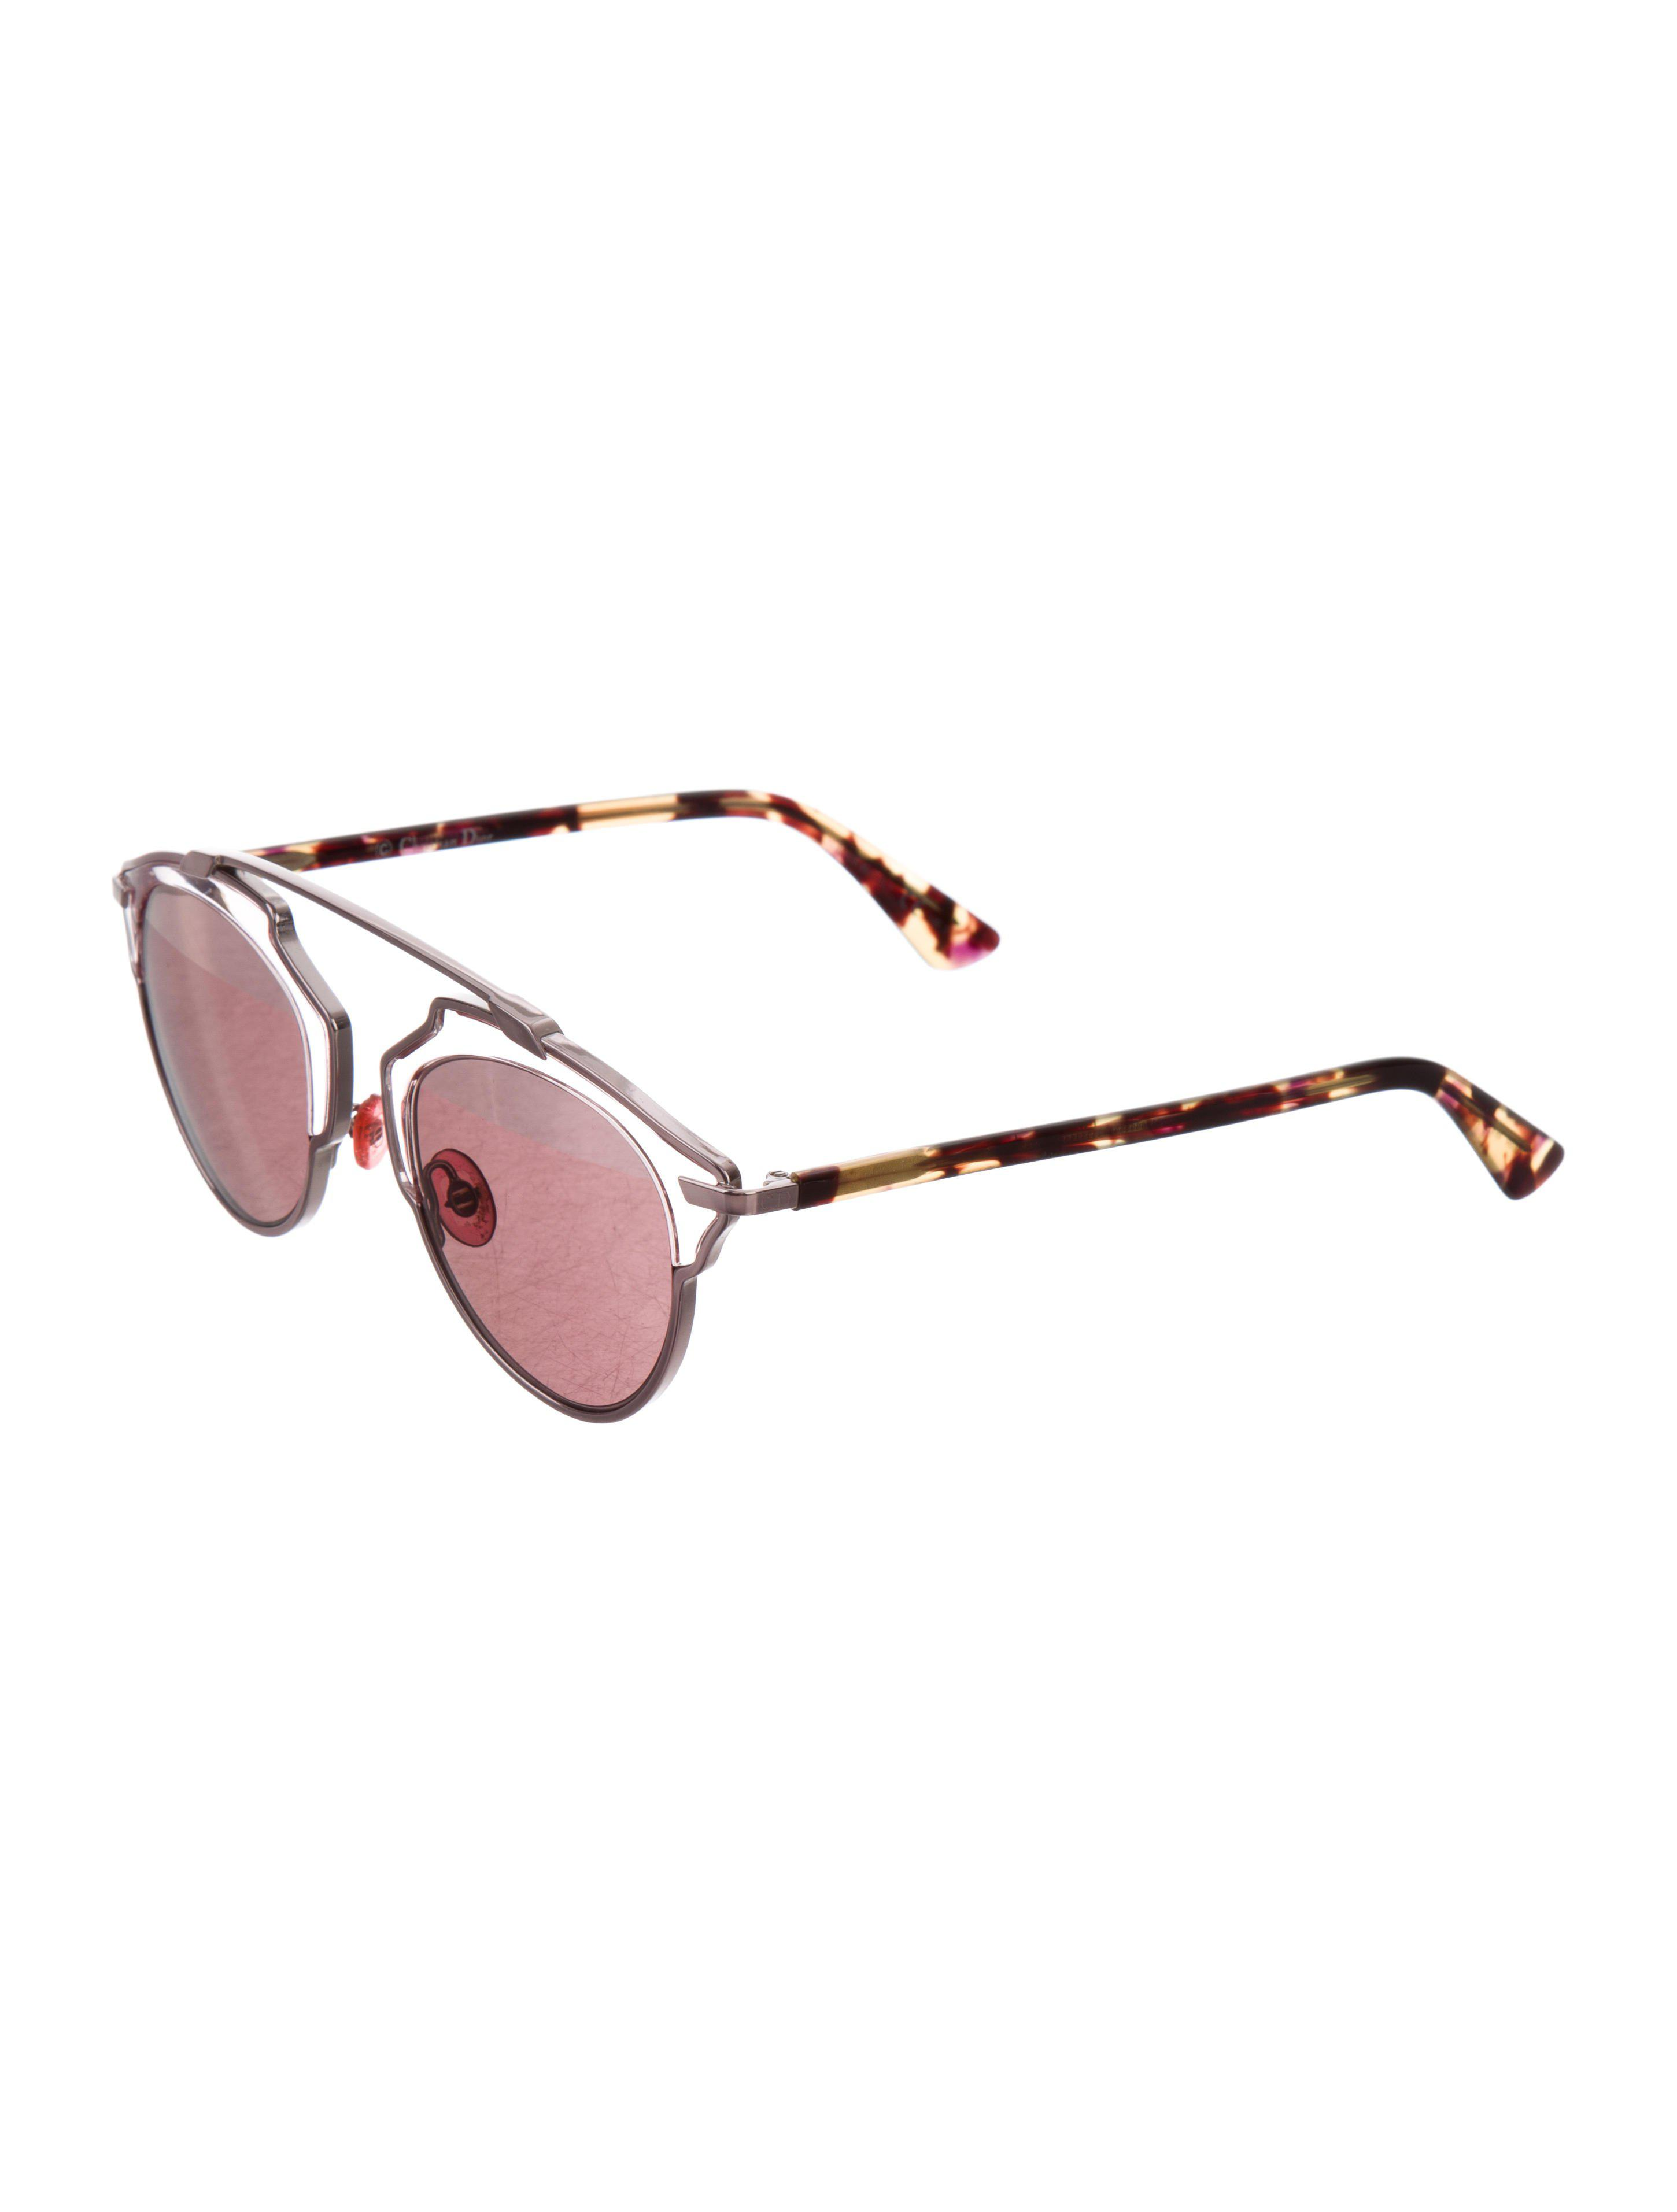 a711c5af10 Lyst - Dior So Real Reflective Sunglasses in Metallic